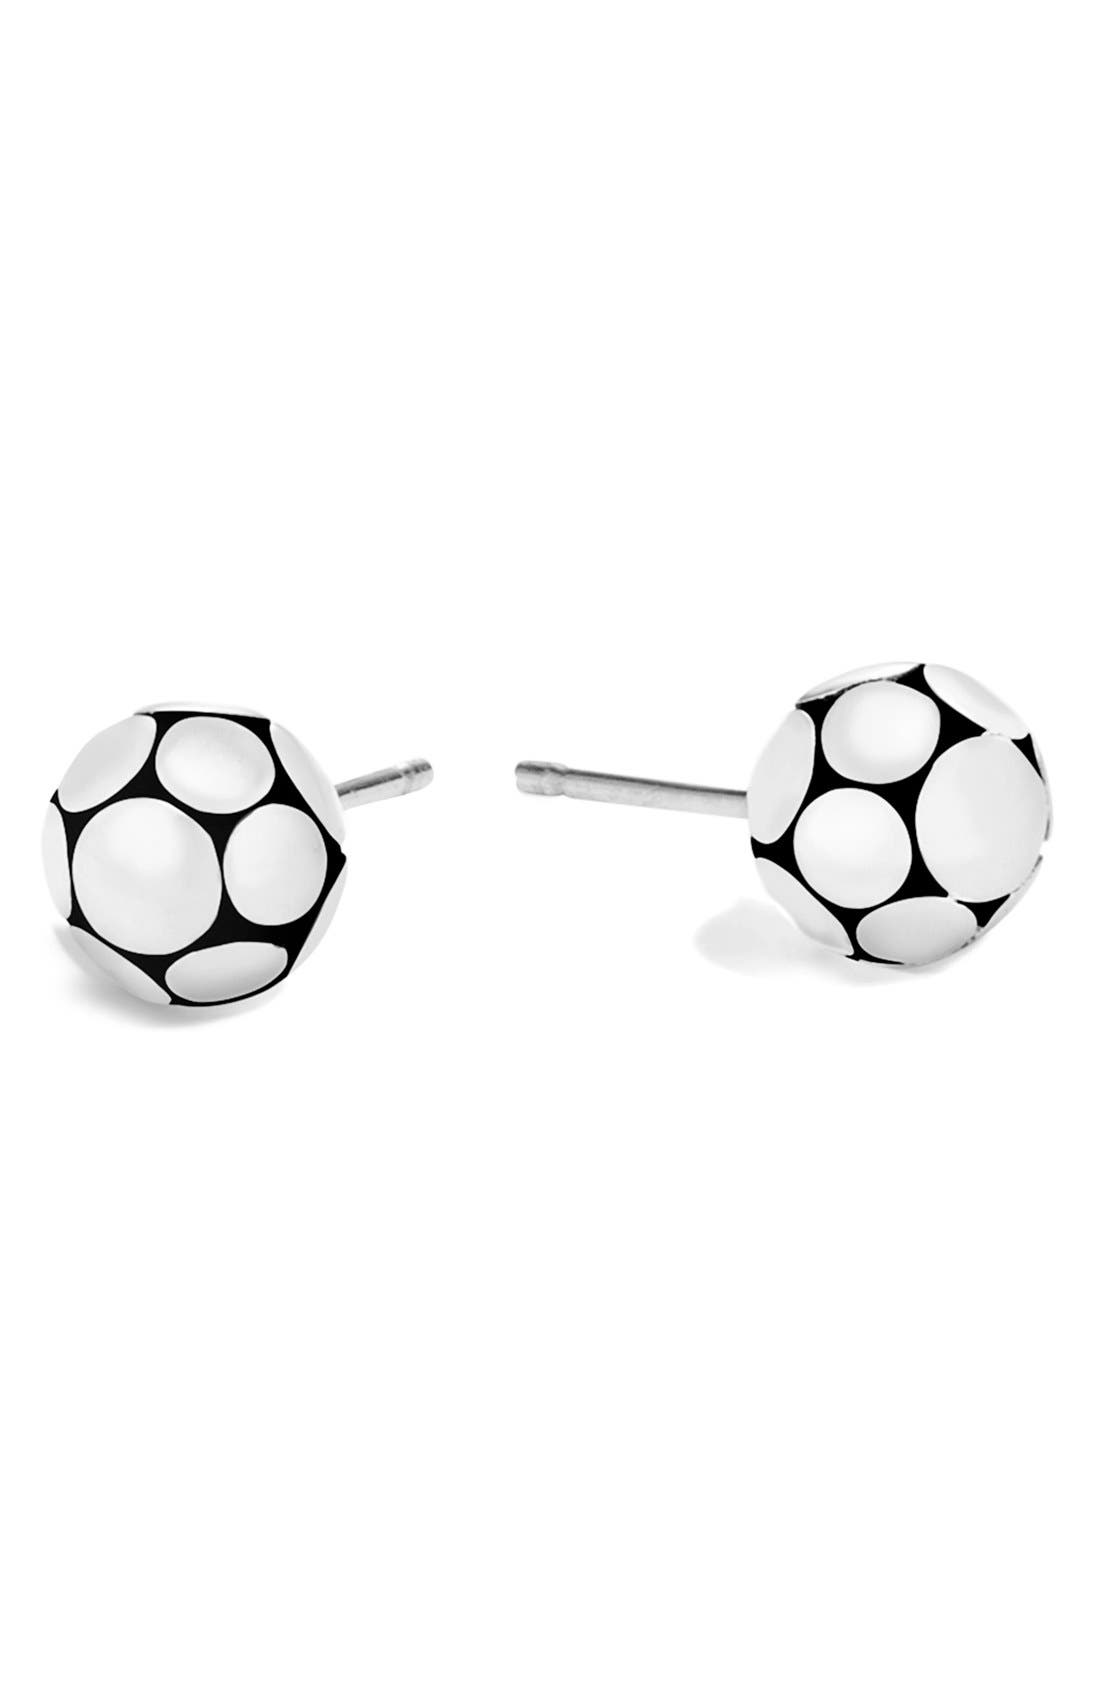 Alternate Image 1 Selected - John Hardy Dot Small Stud Earrings